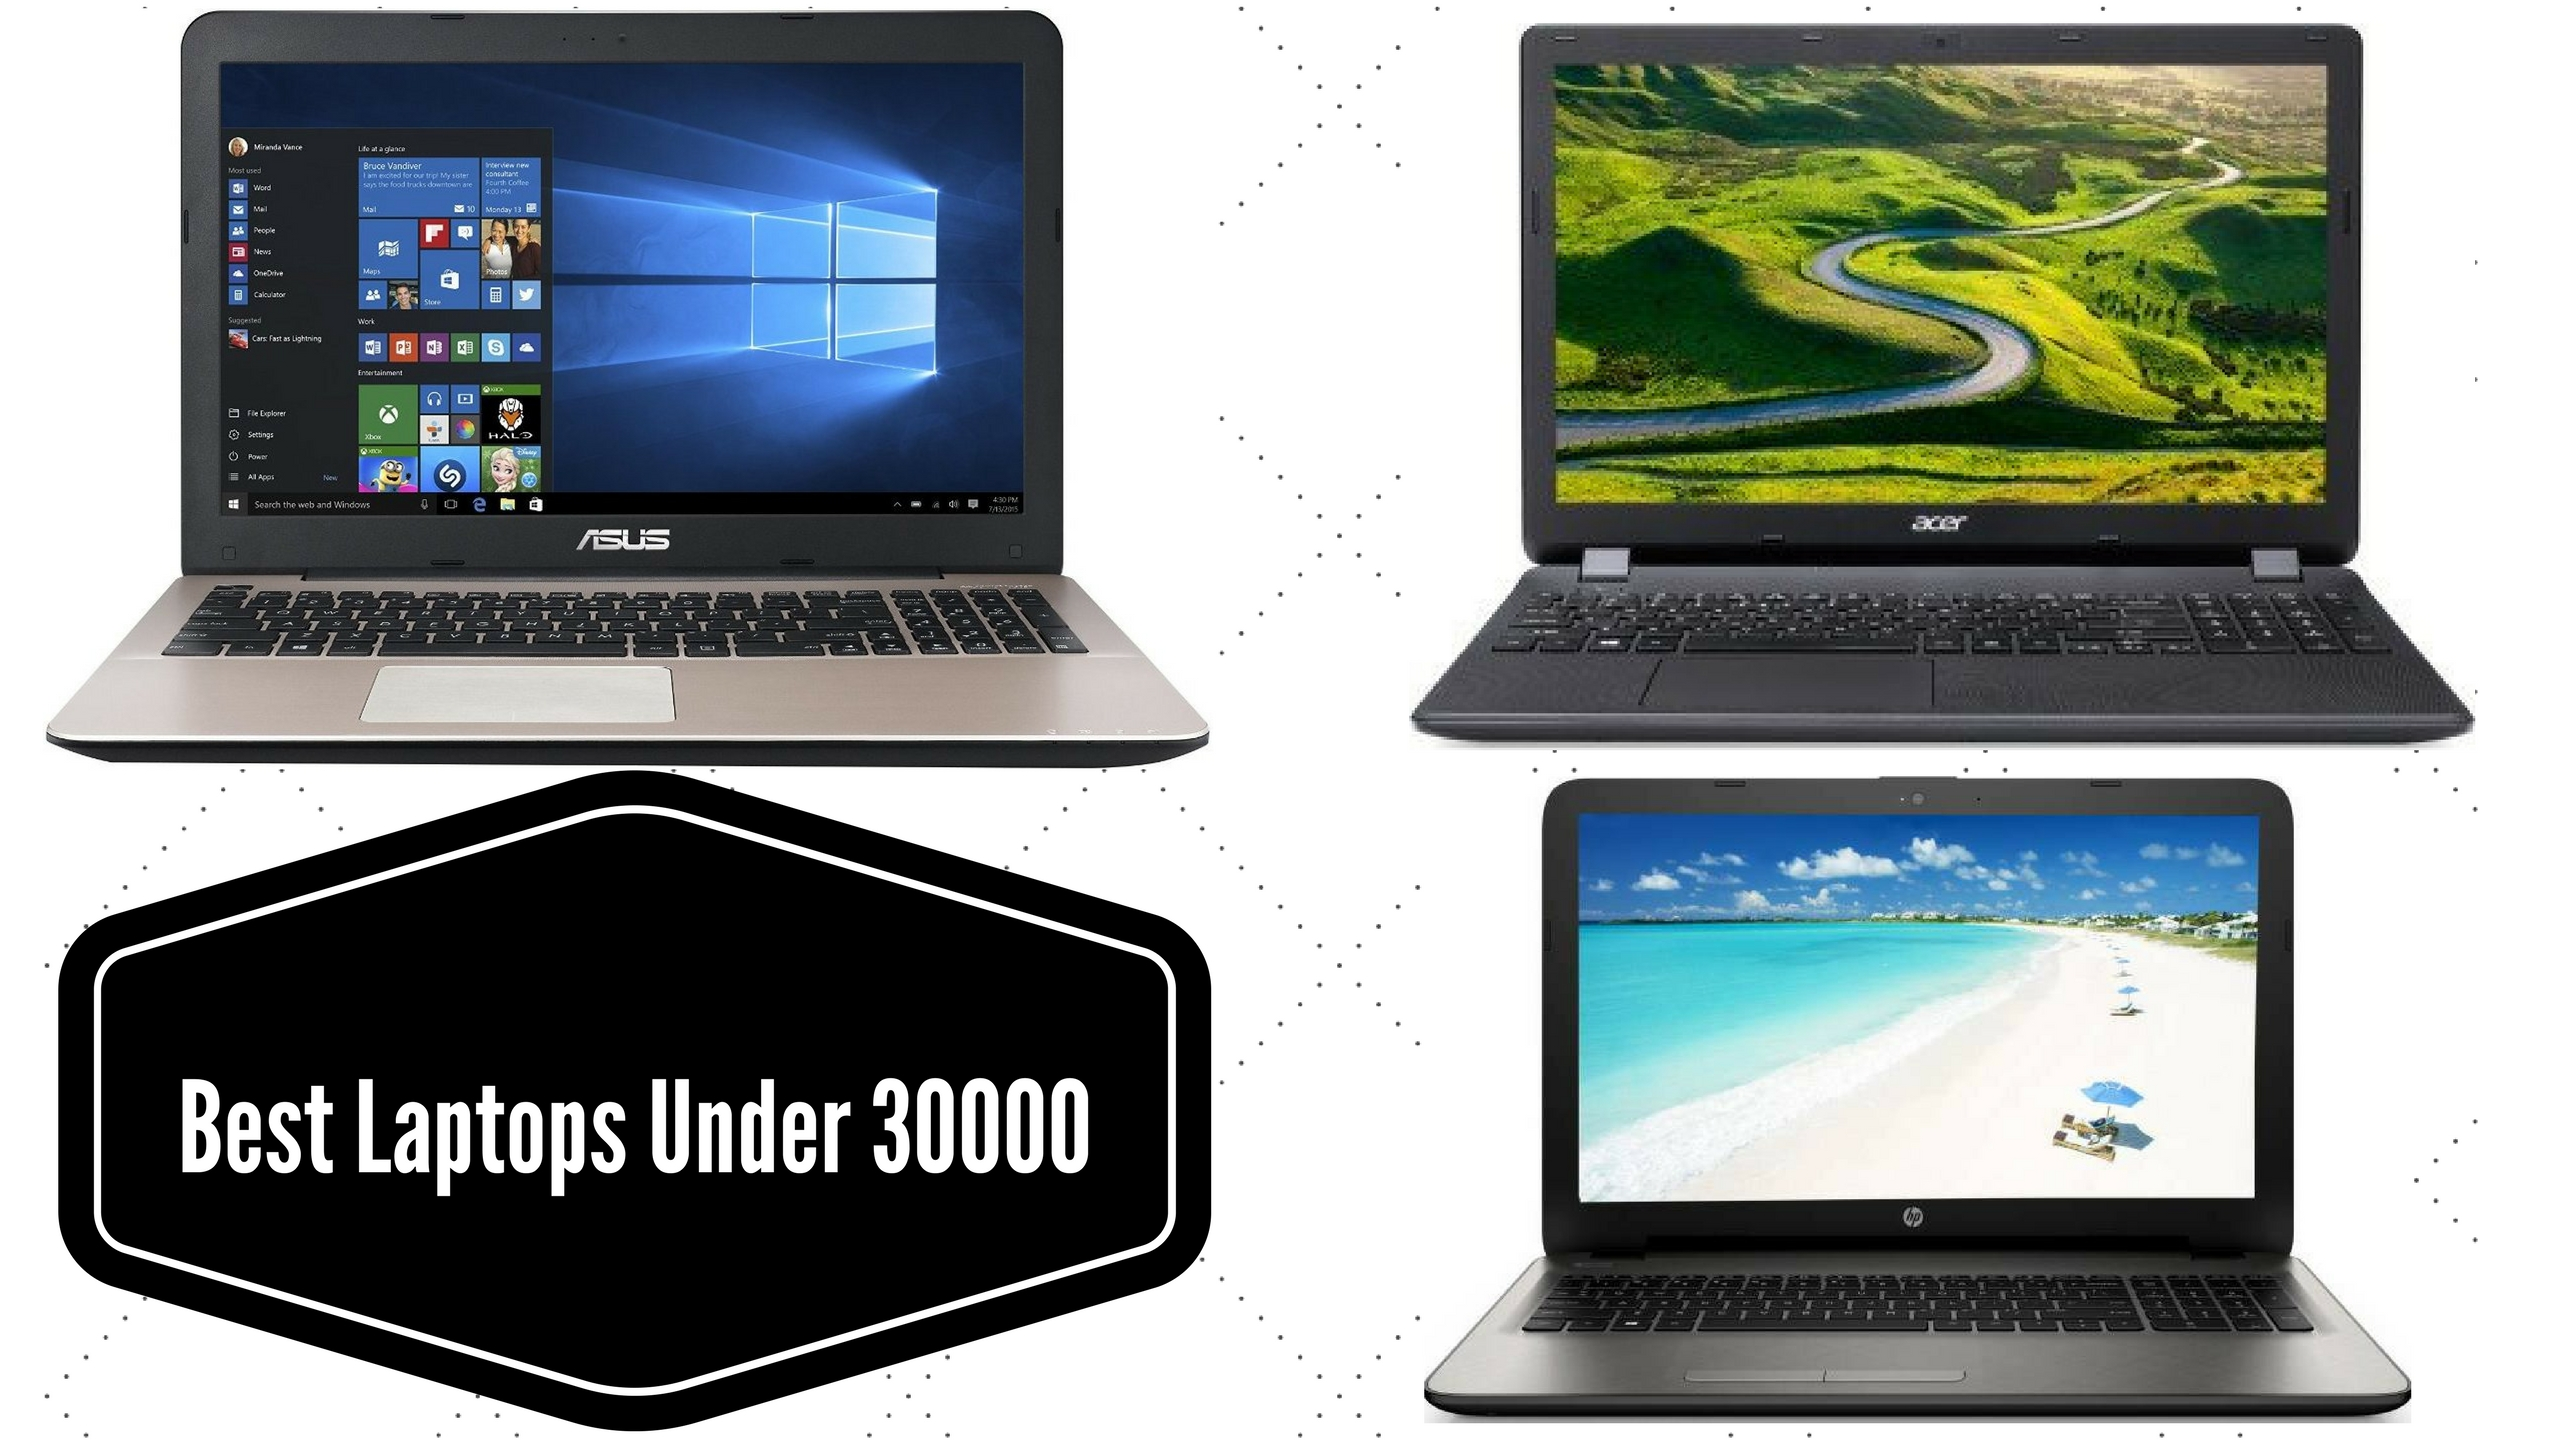 Top 10 Best laptops Under 30000 In India Reviews Comparison & Price List 2018